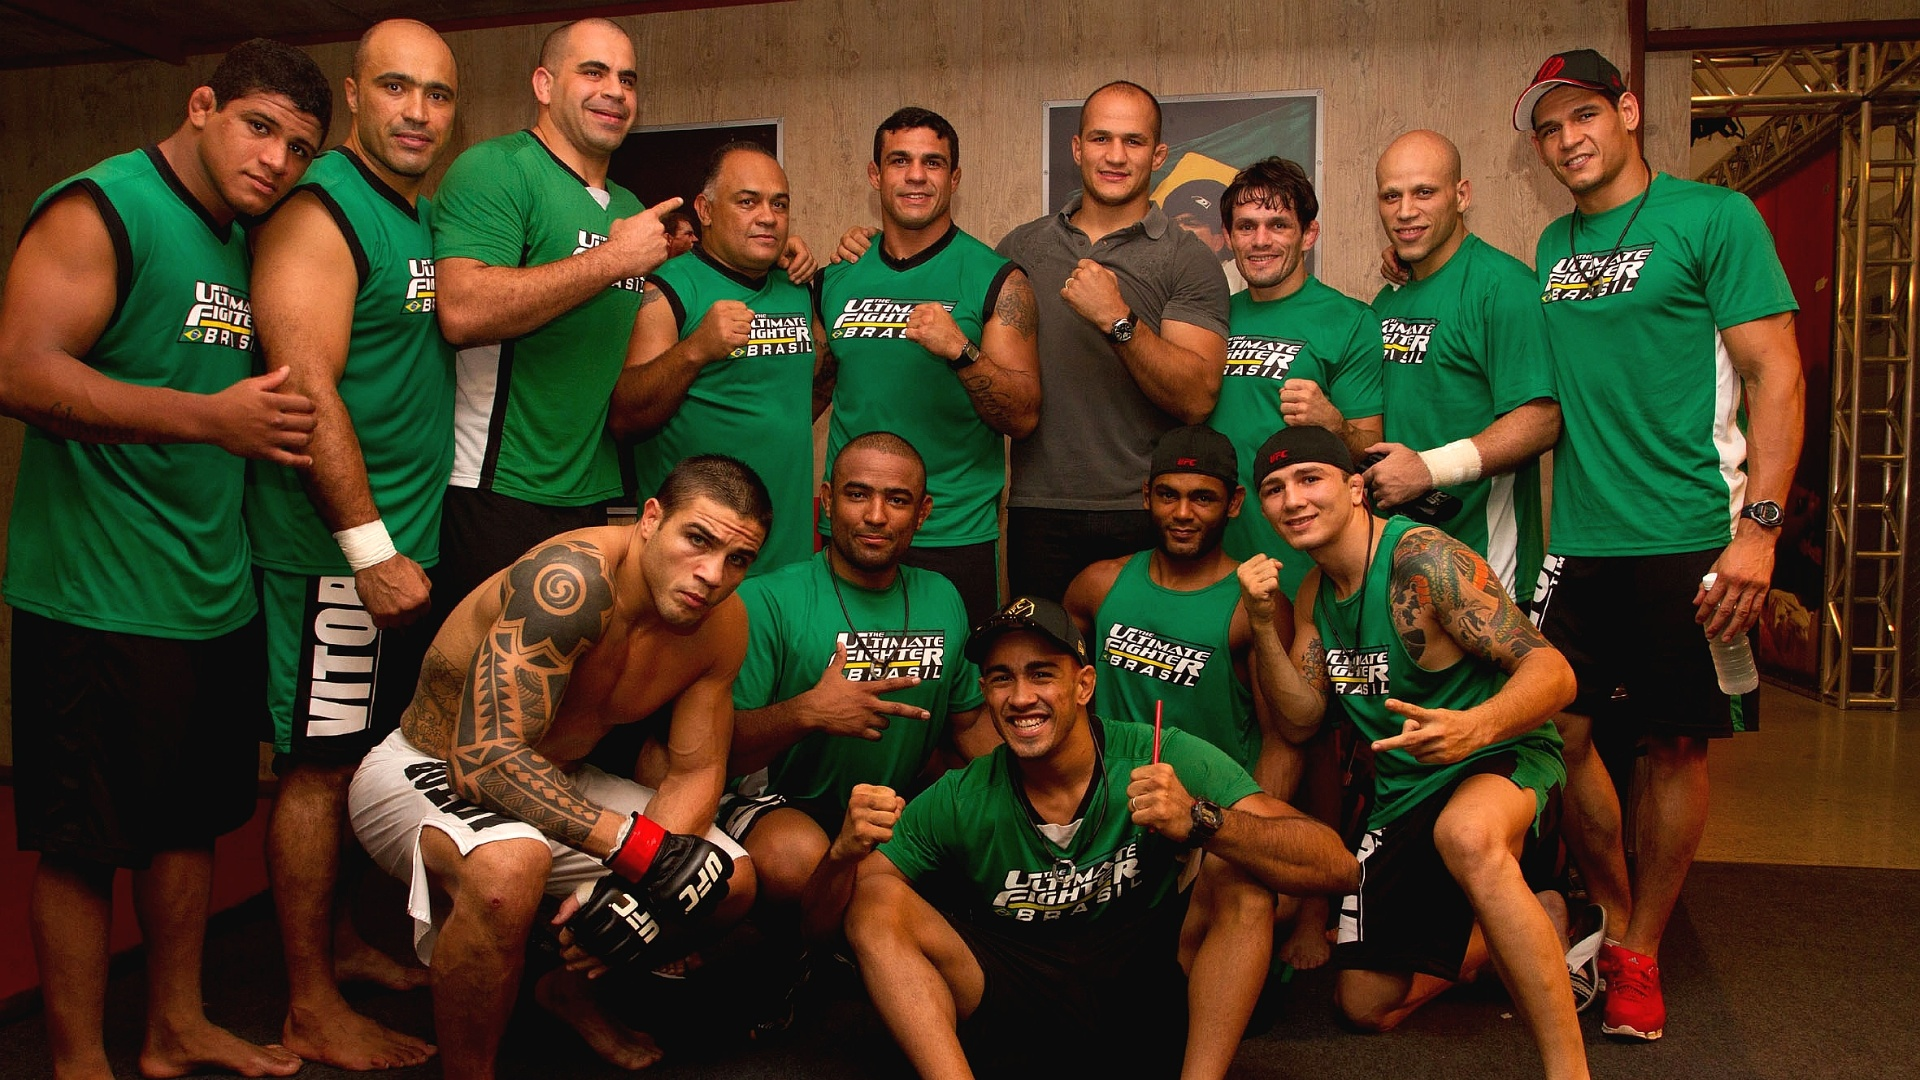 Jnior Cigano visita o TUF Brasil e posa para foto com time de Vitor Belfort